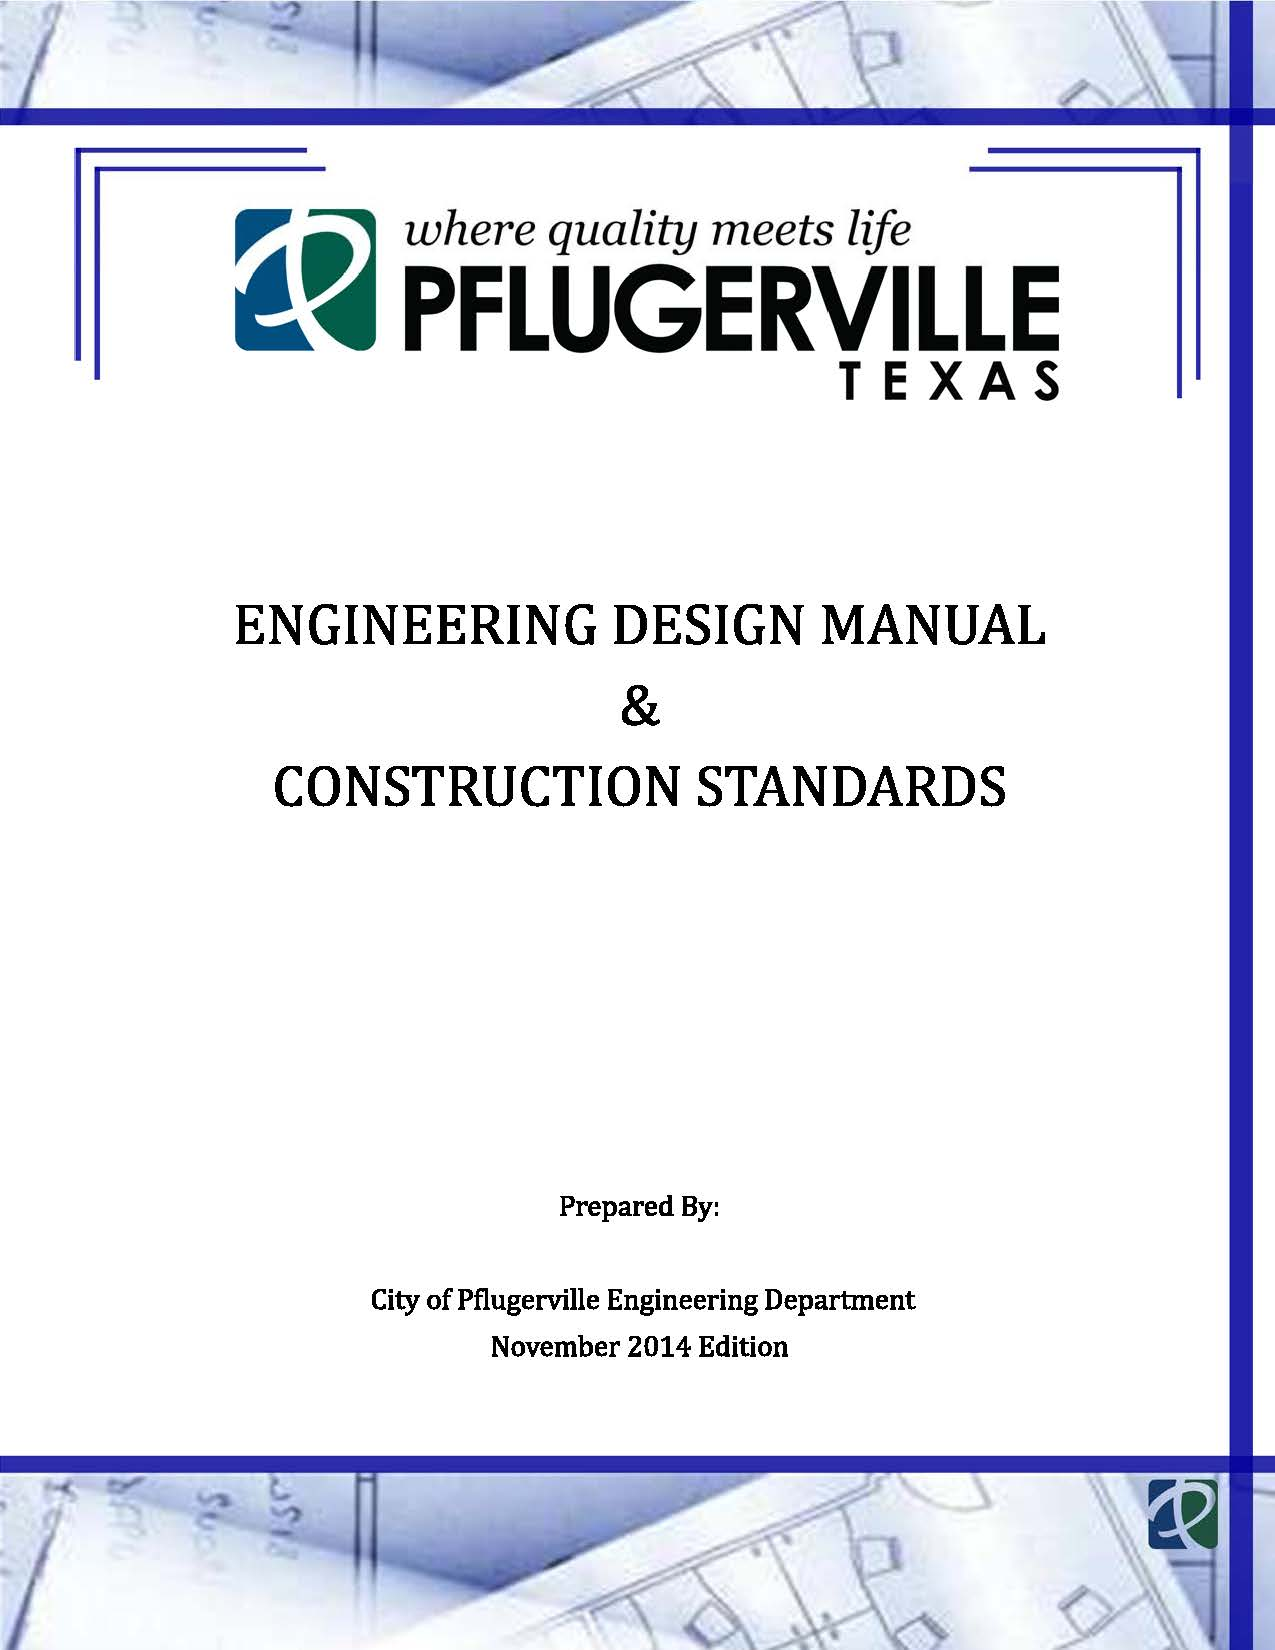 engineering design manual cover